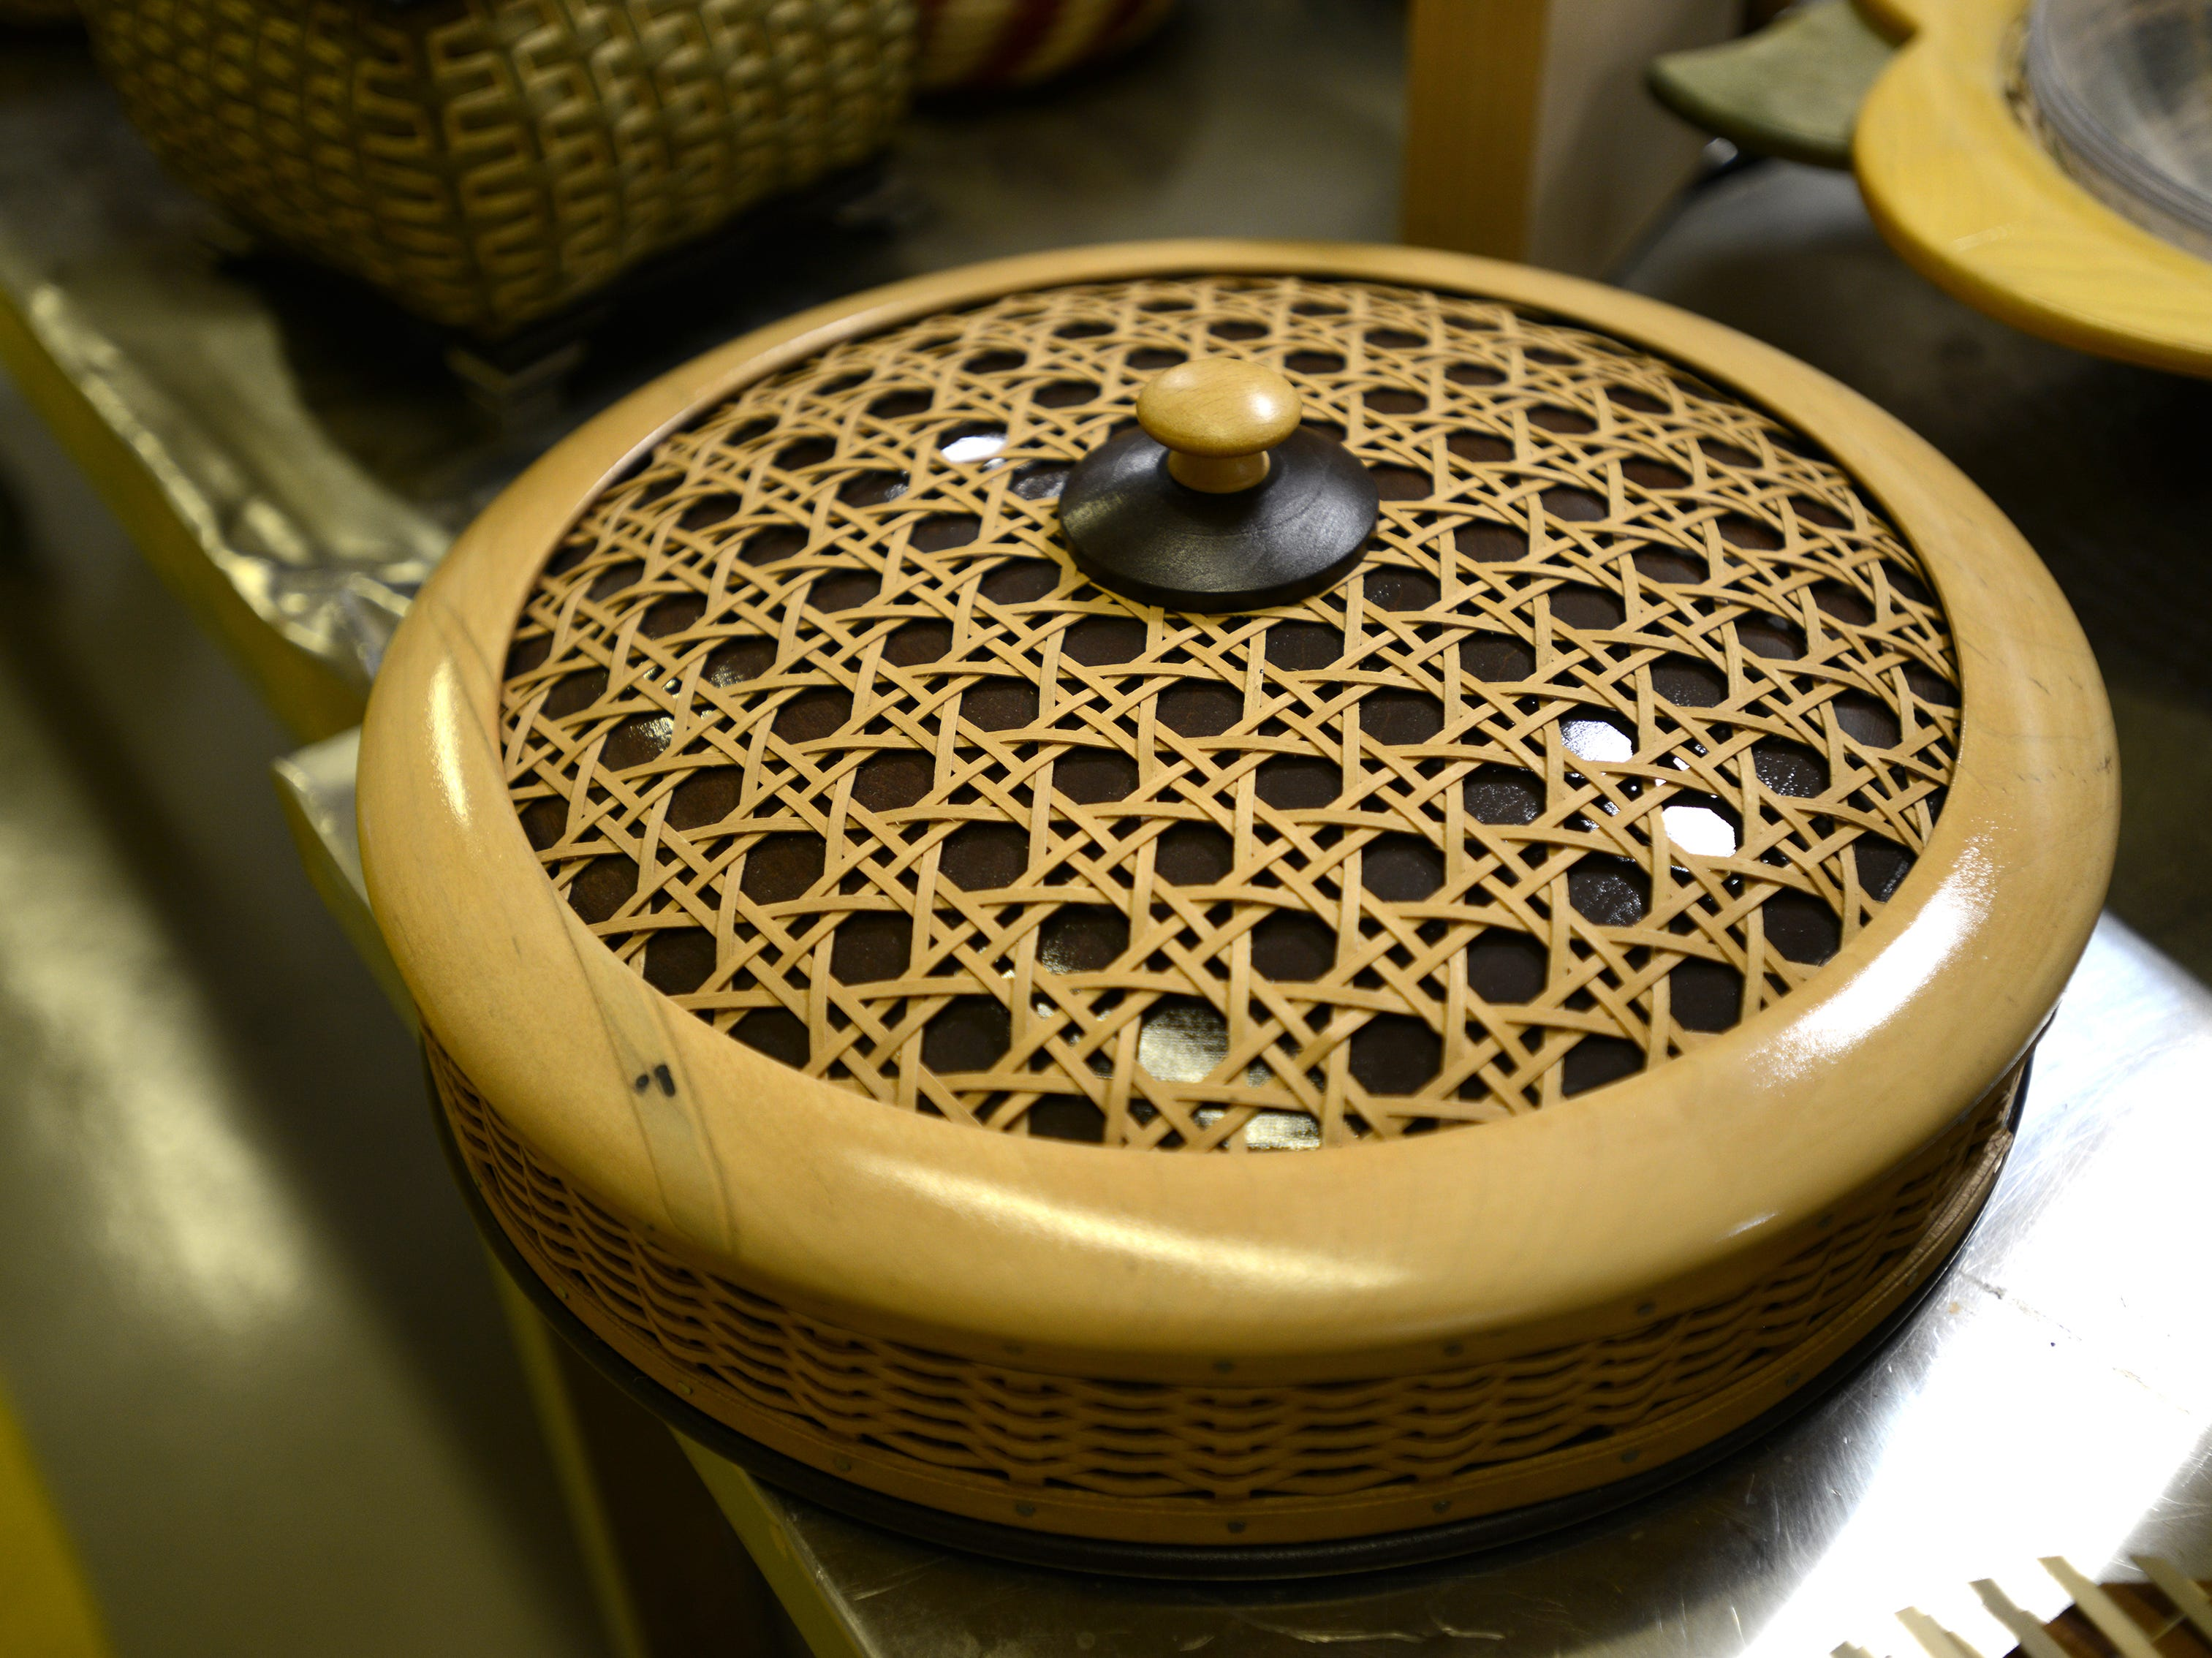 A completed Serenity basket from Longaberger's Master's Studio line.